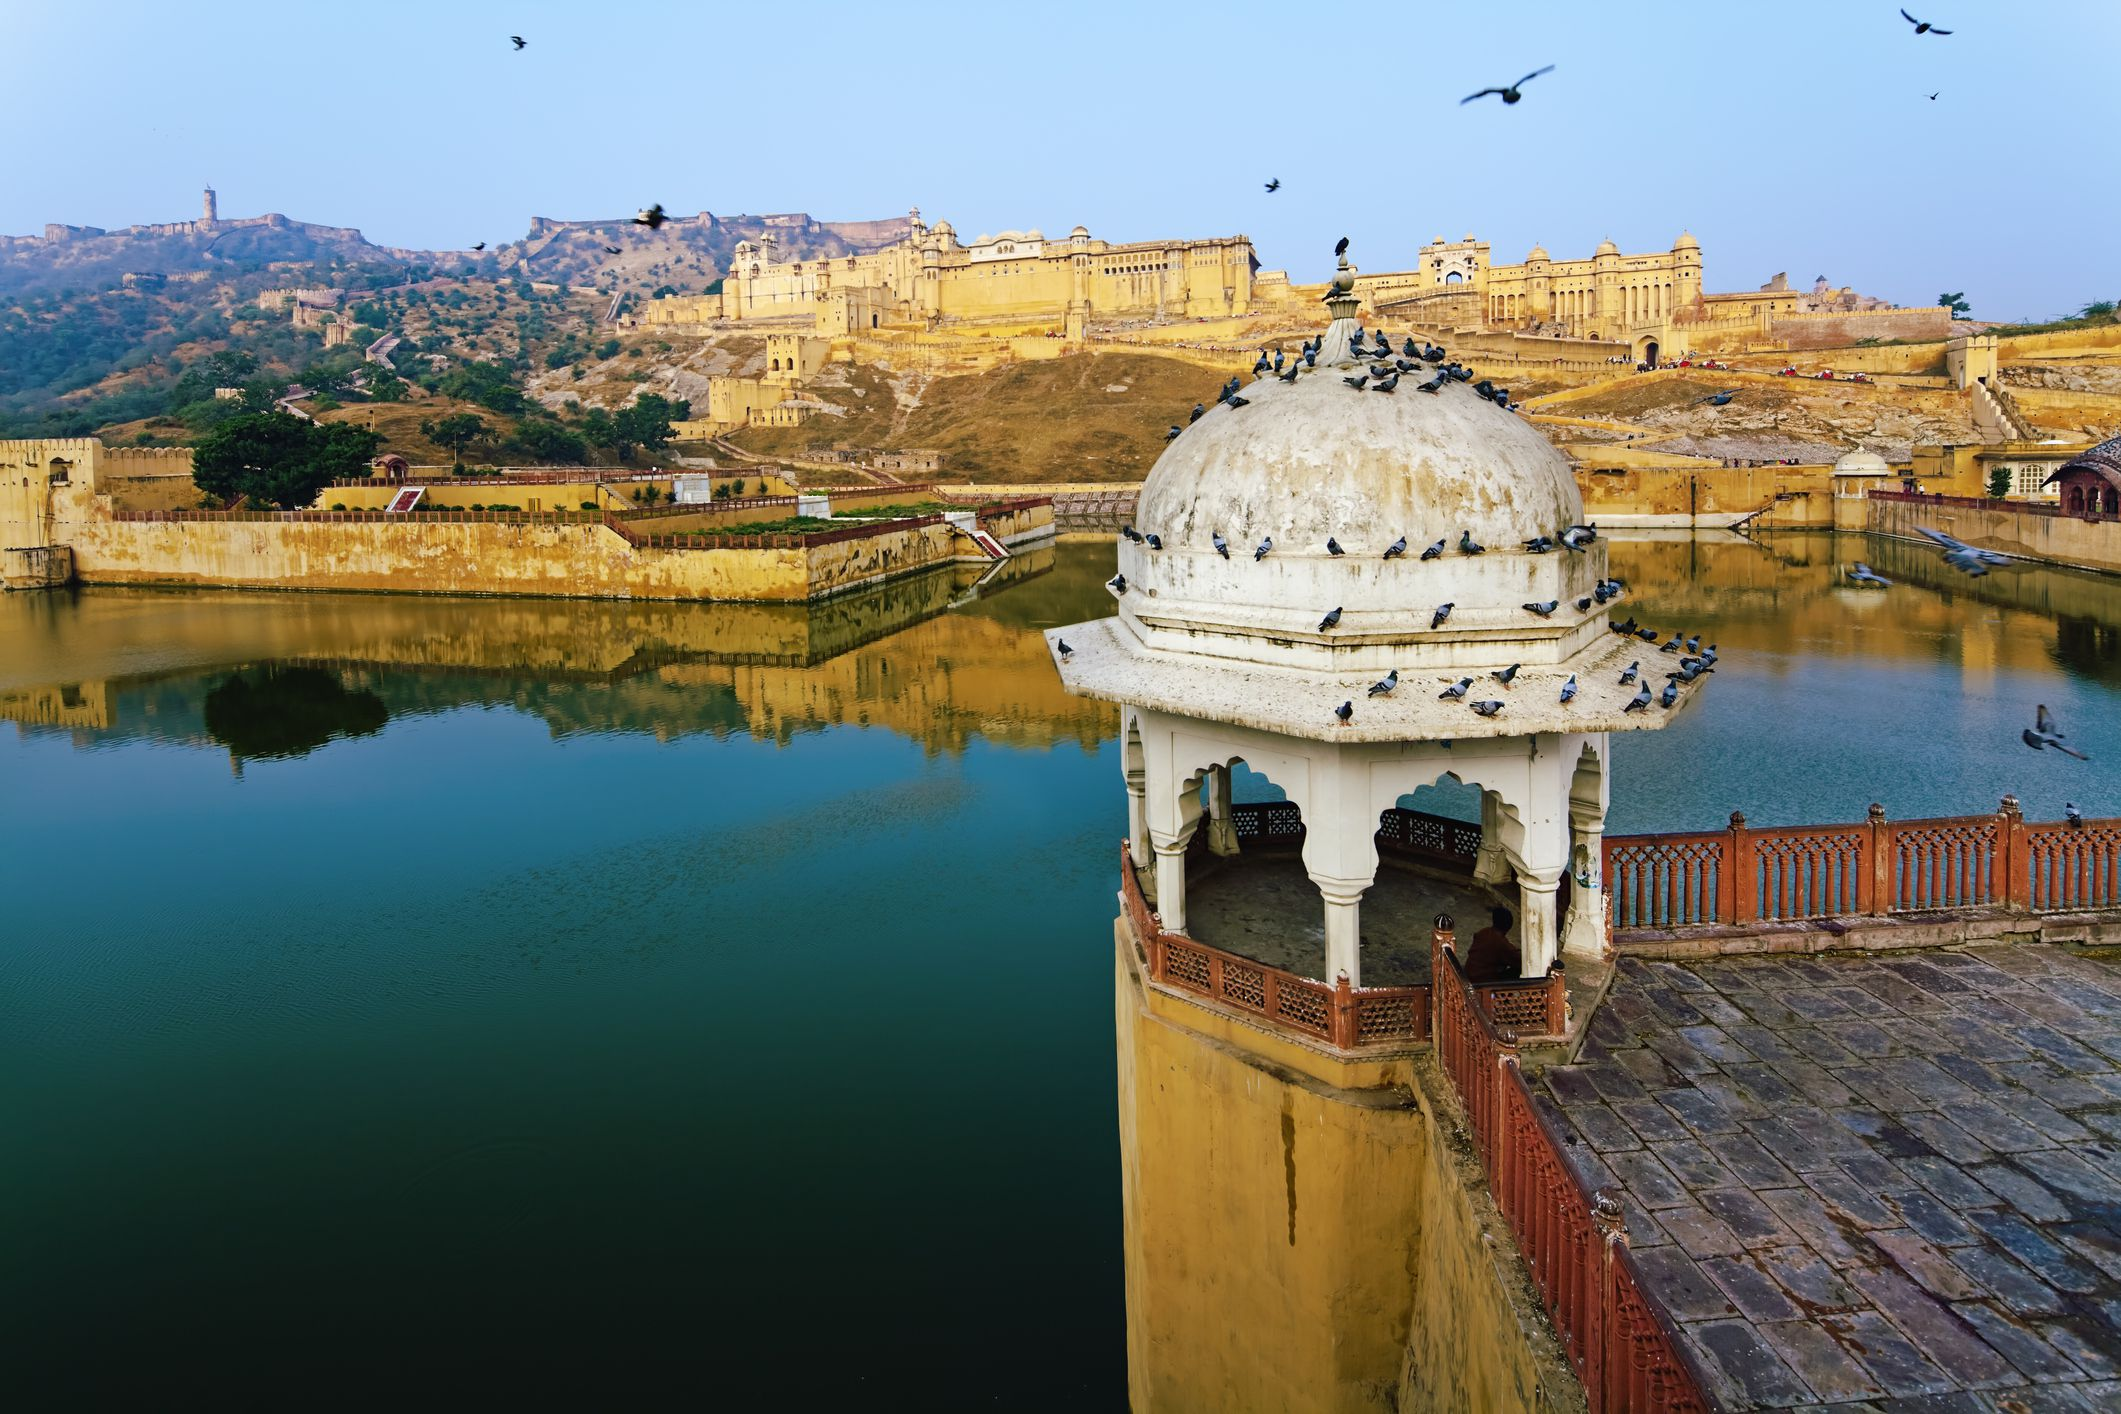 Jaipur's Amber Fort: The Complete Guide